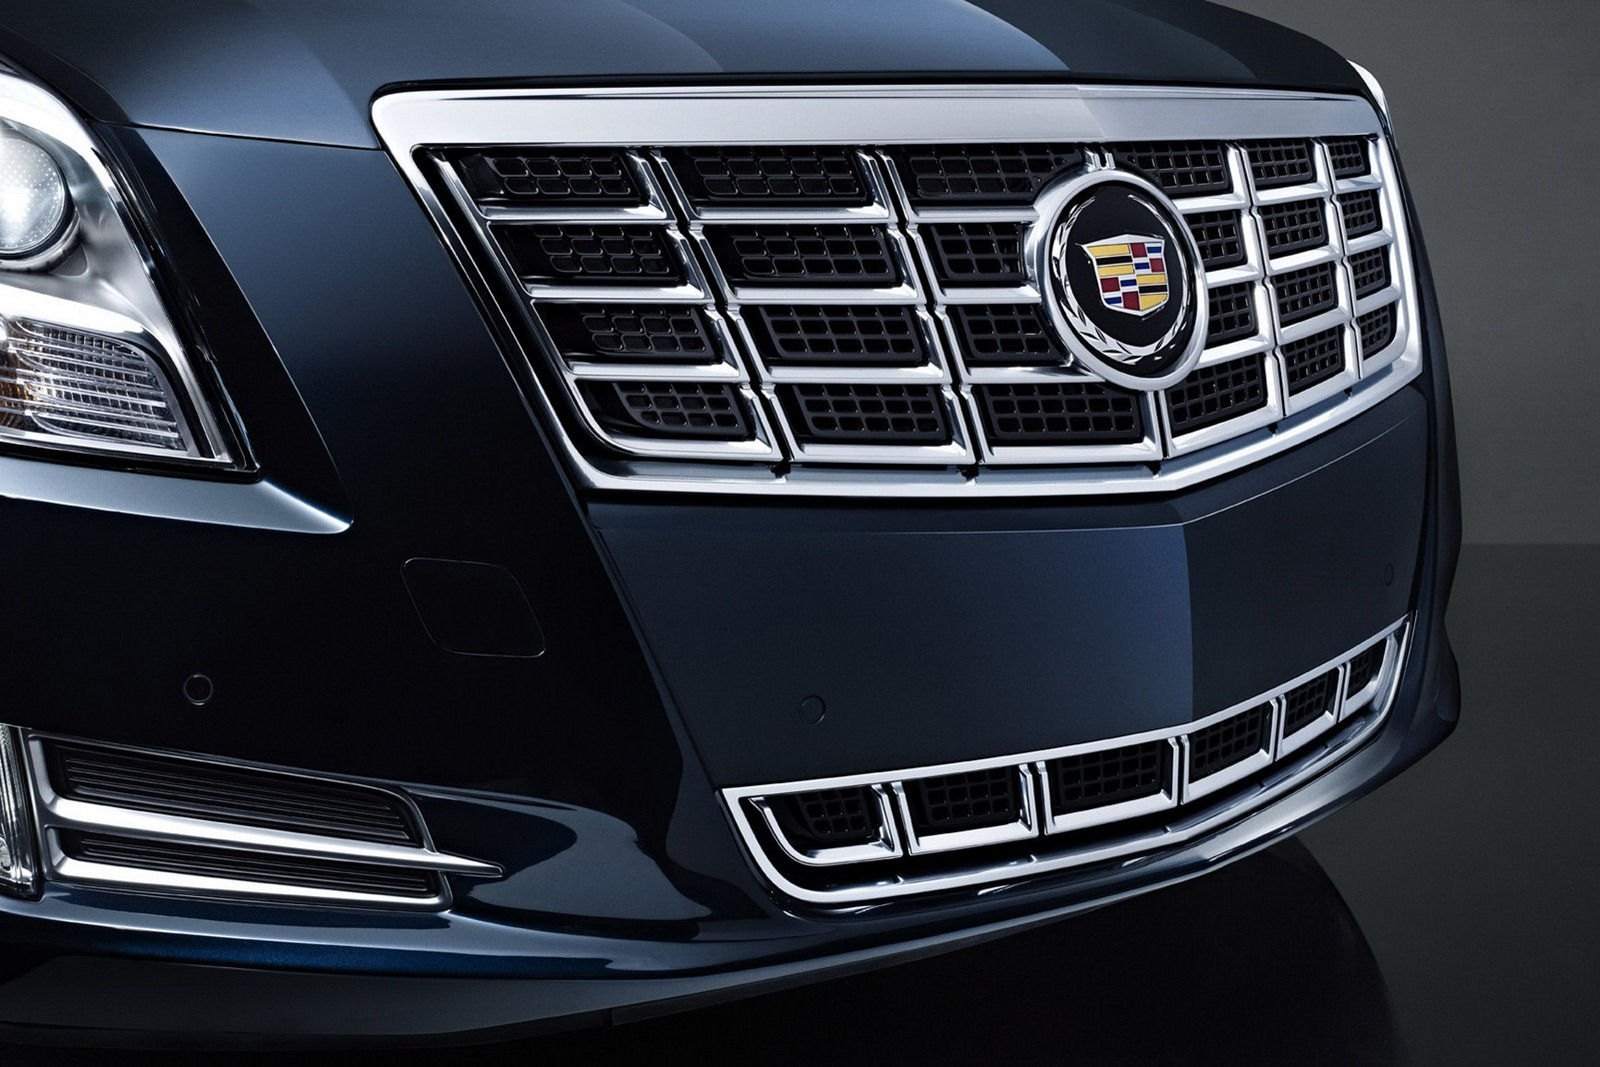 2013 Cadillac Xts Us Price Announced Autoevolution